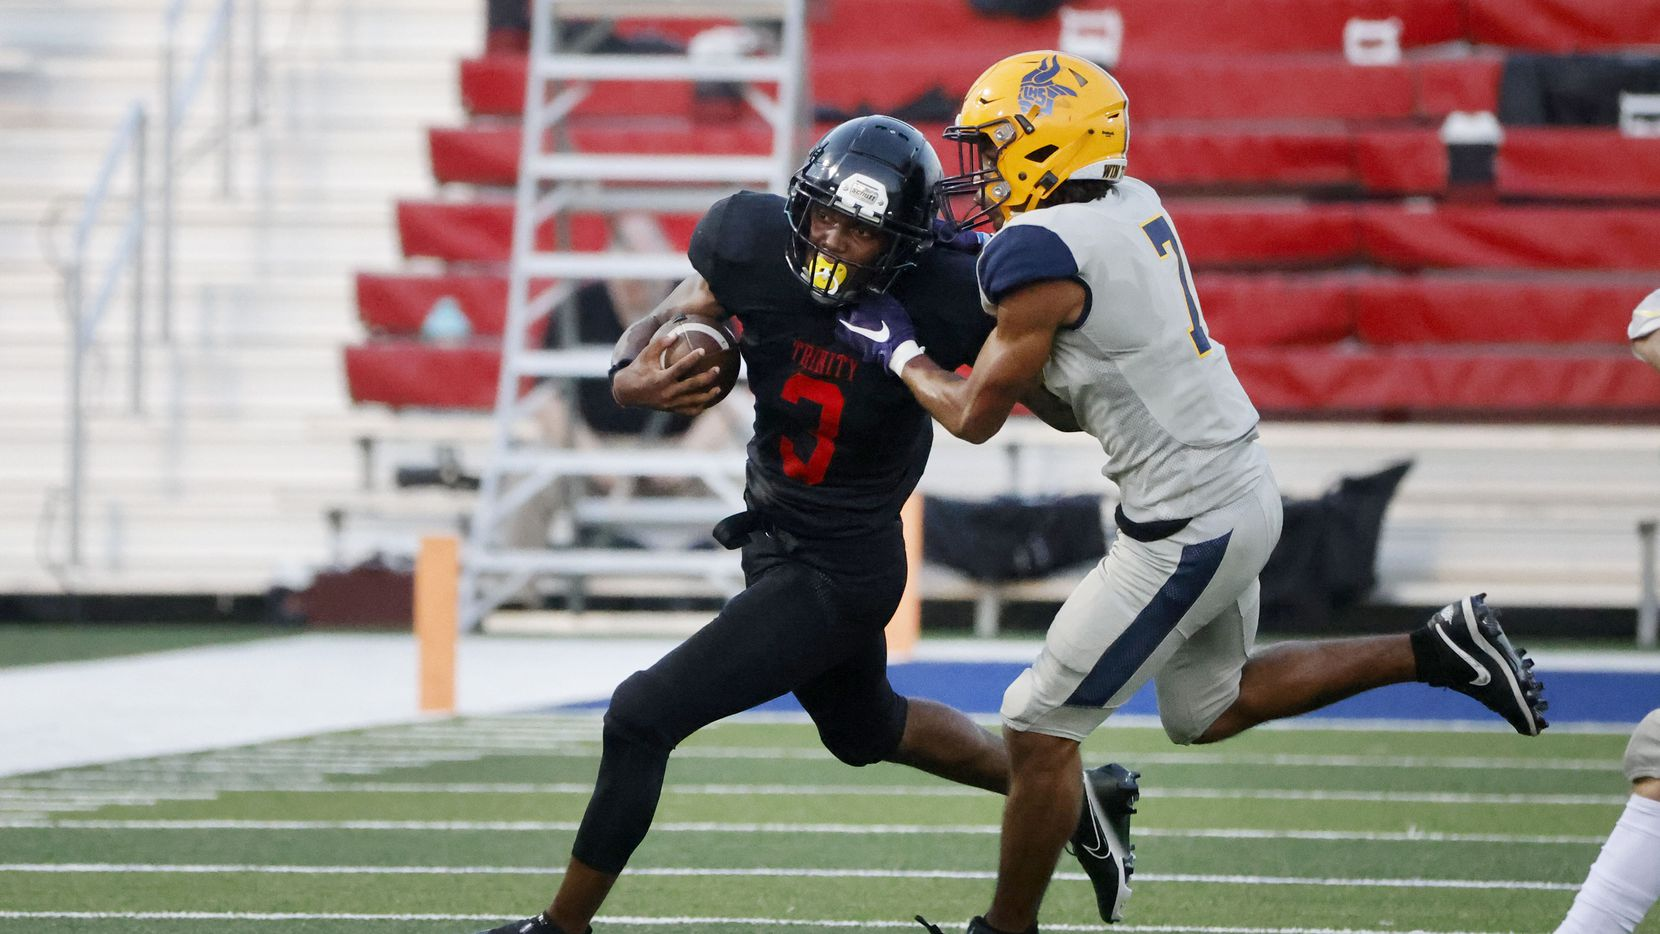 Euless Trinity running back Garry Maddox (3) tries to get out the grasp of Arlington Lamar defender Lonnell Cunningham during the first half of their high school football game in Bedford, Texas on Aug. 26, 2021. (Michael Ainsworth/Special Contributor)